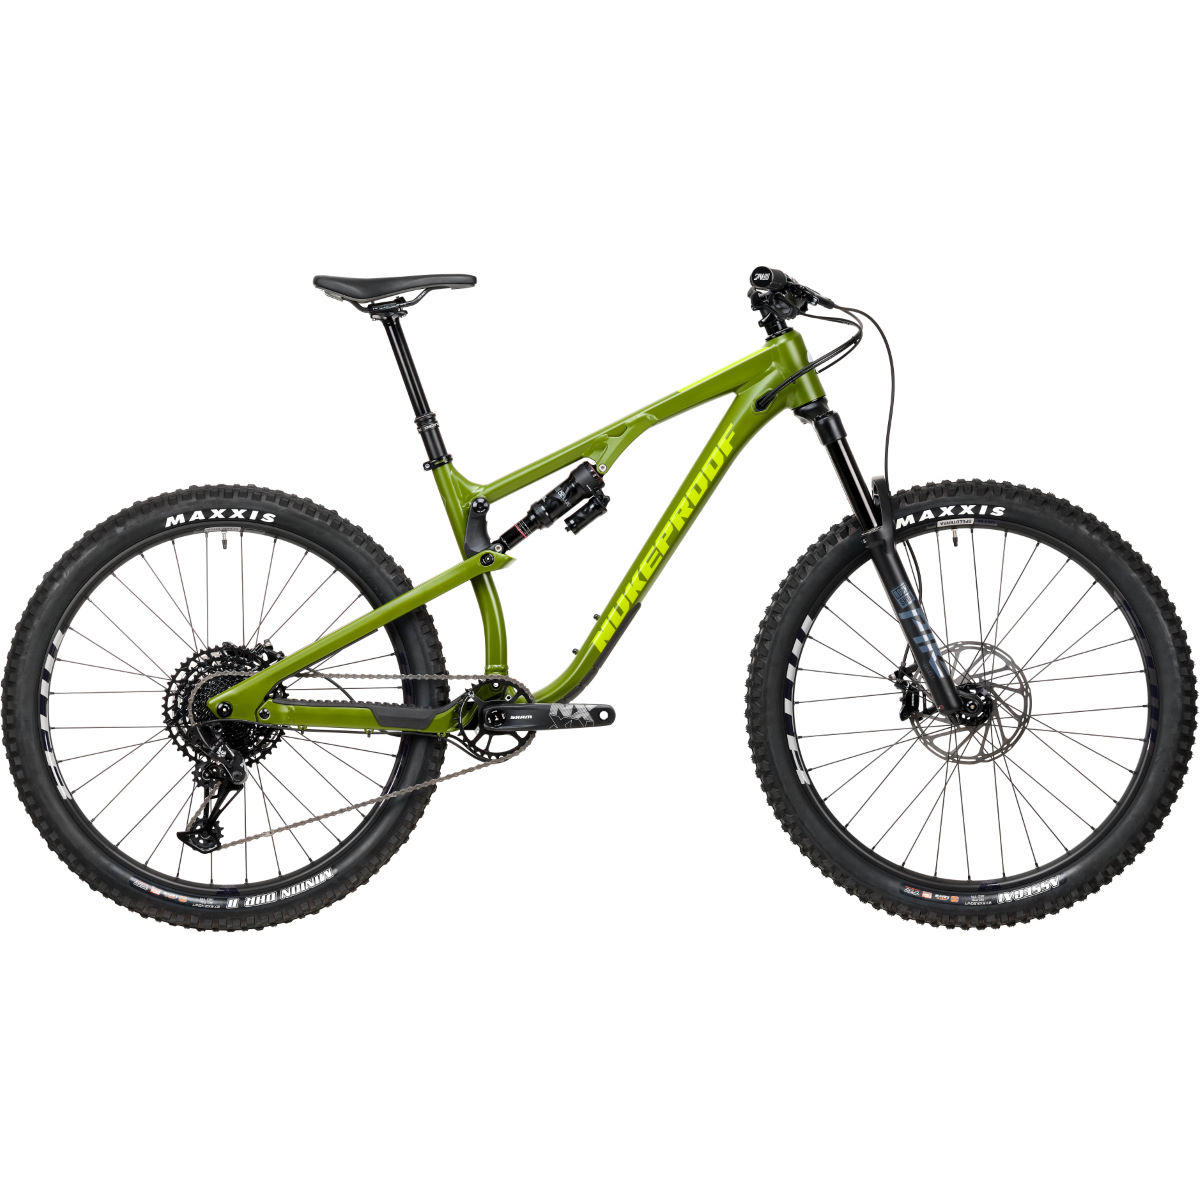 Nukeproof Nukeproof Reactor 275 Expert Alloy Bike (NX Eagle - 2020)   Full Suspension Mountain Bikes